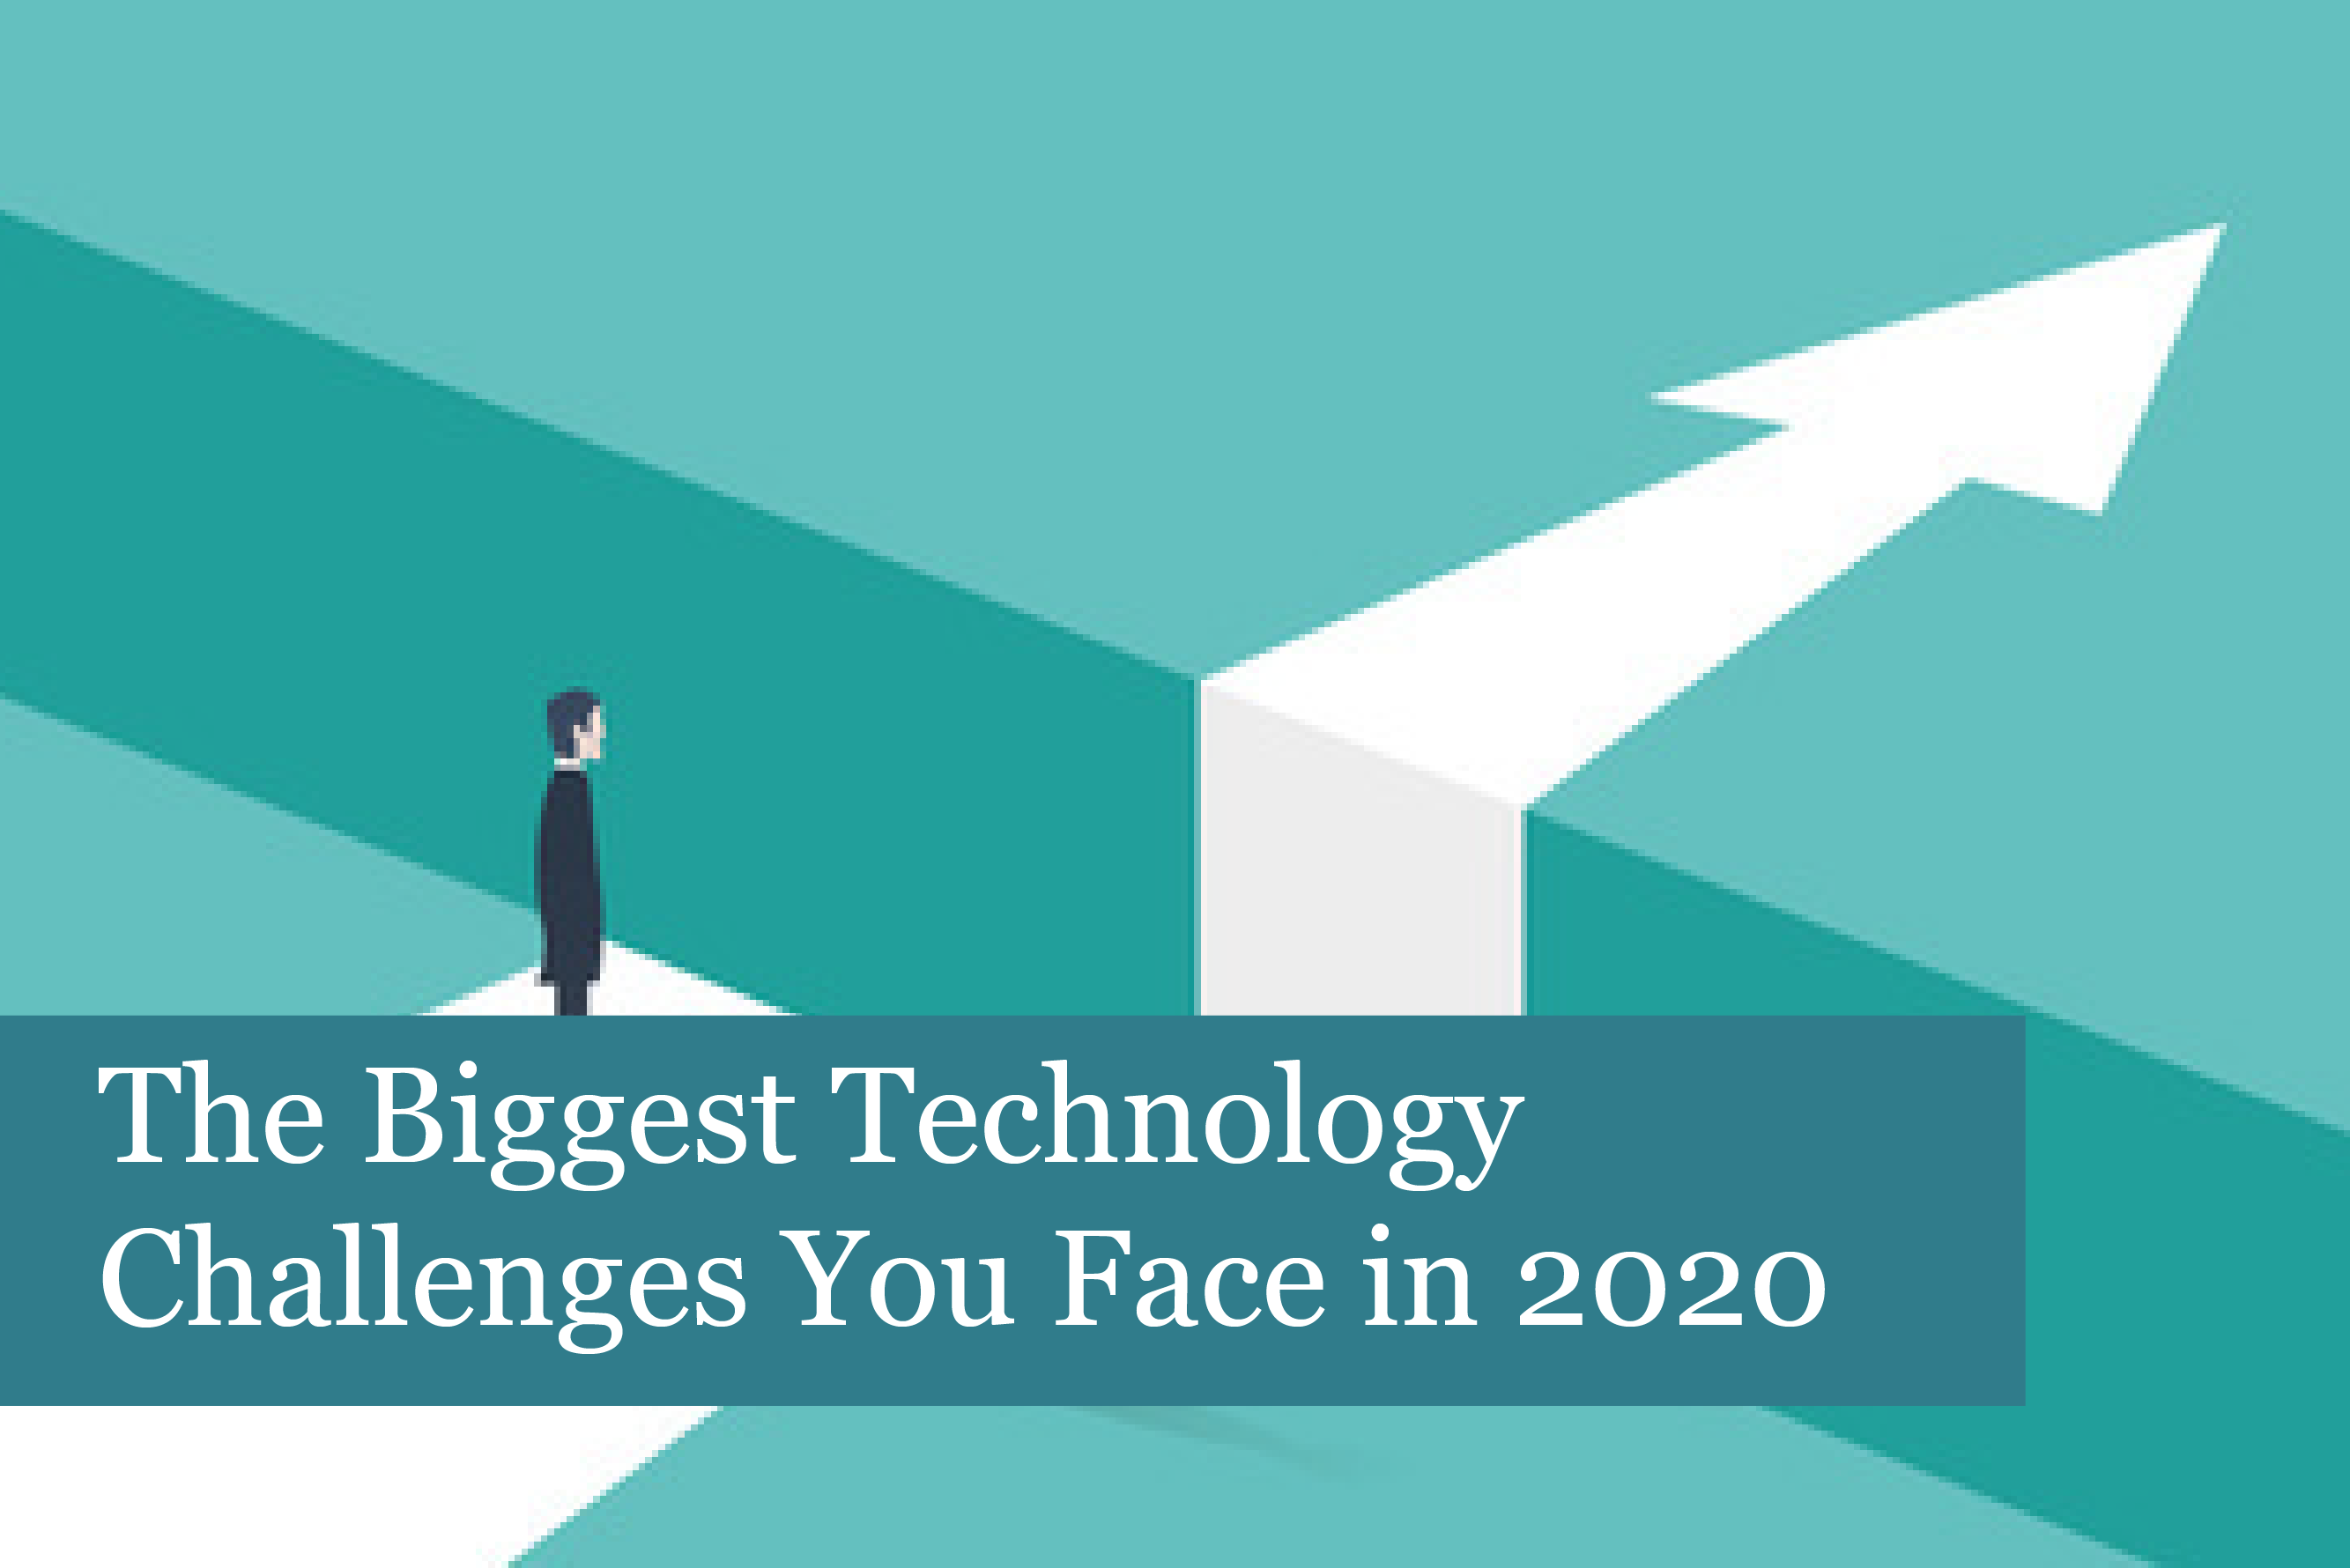 The Biggest Technology Challenges Your Business Faces in 2020